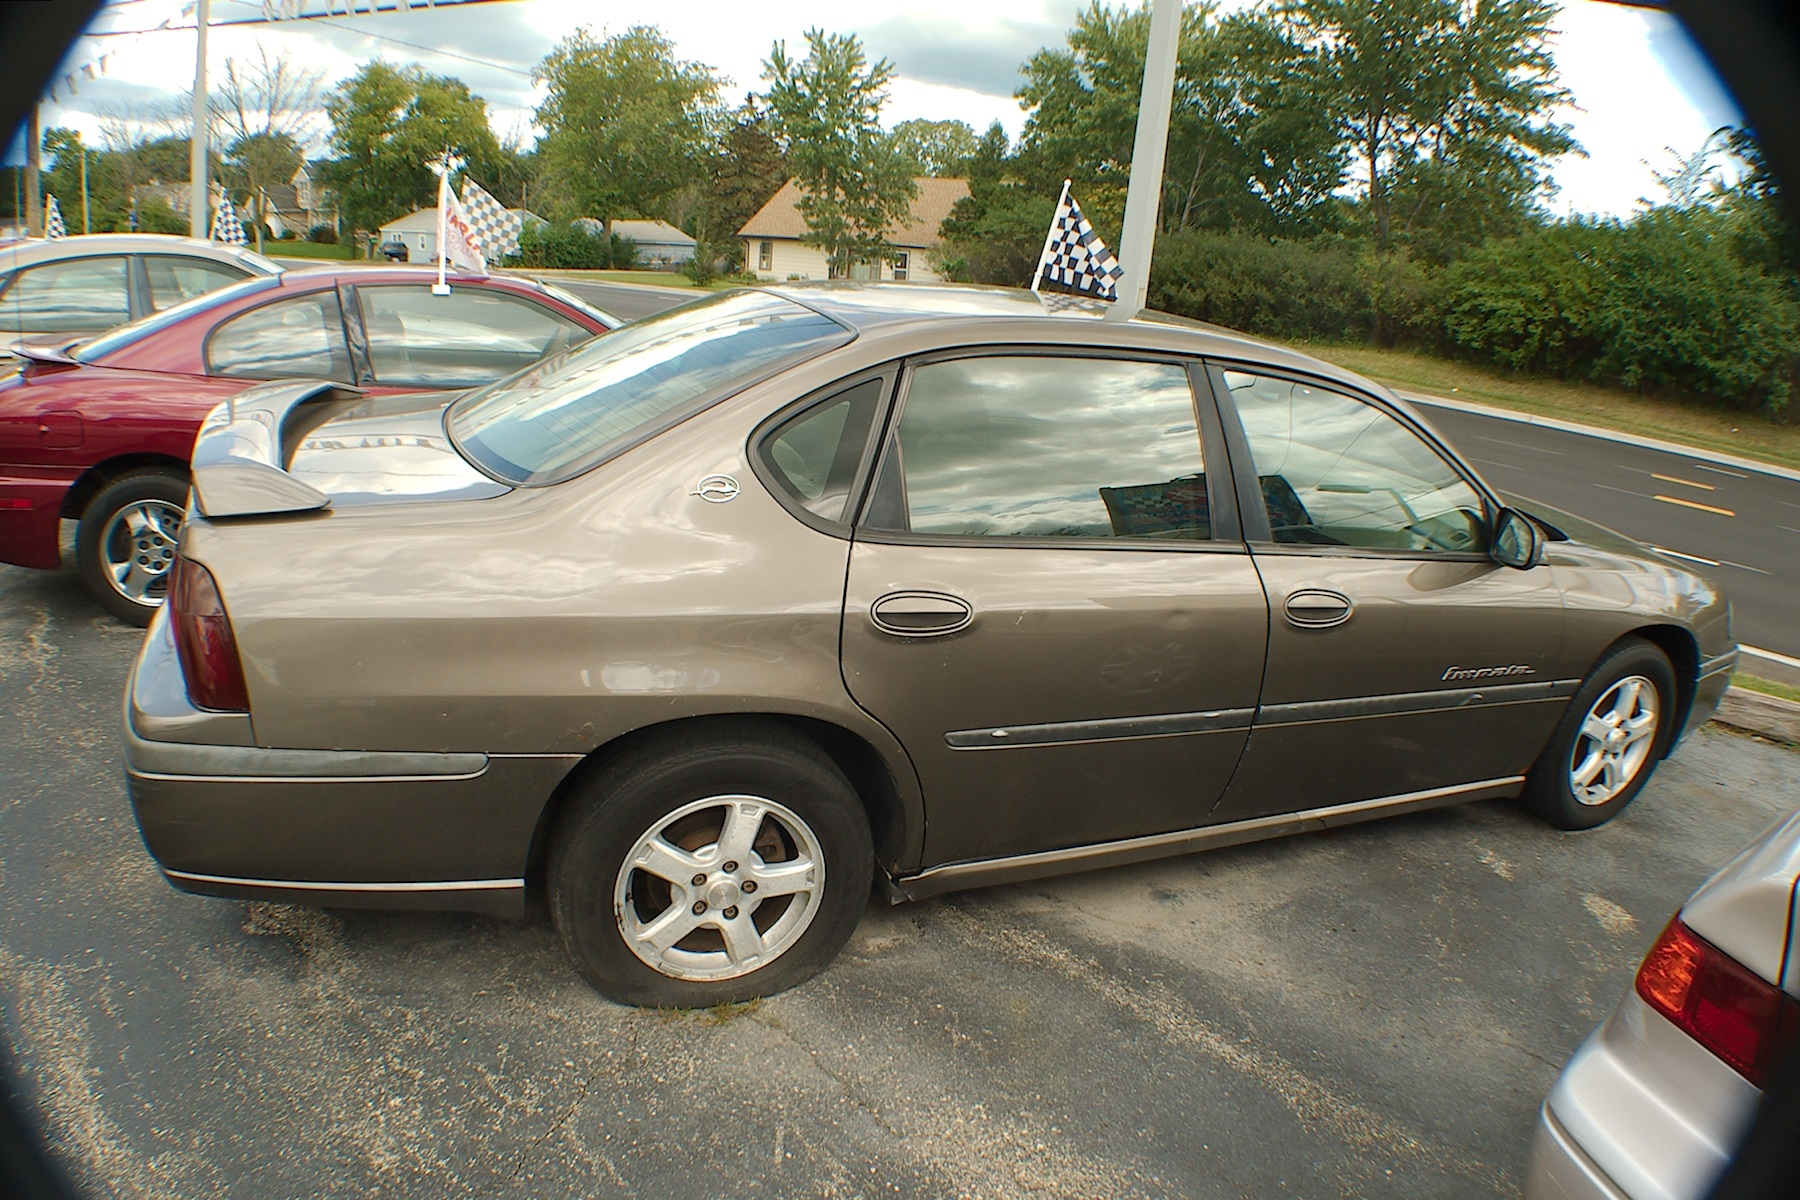 2003 Chevrolet Impala LS Brown Sedan Used Chevy Sale Bannockburn Barrington Beach Park